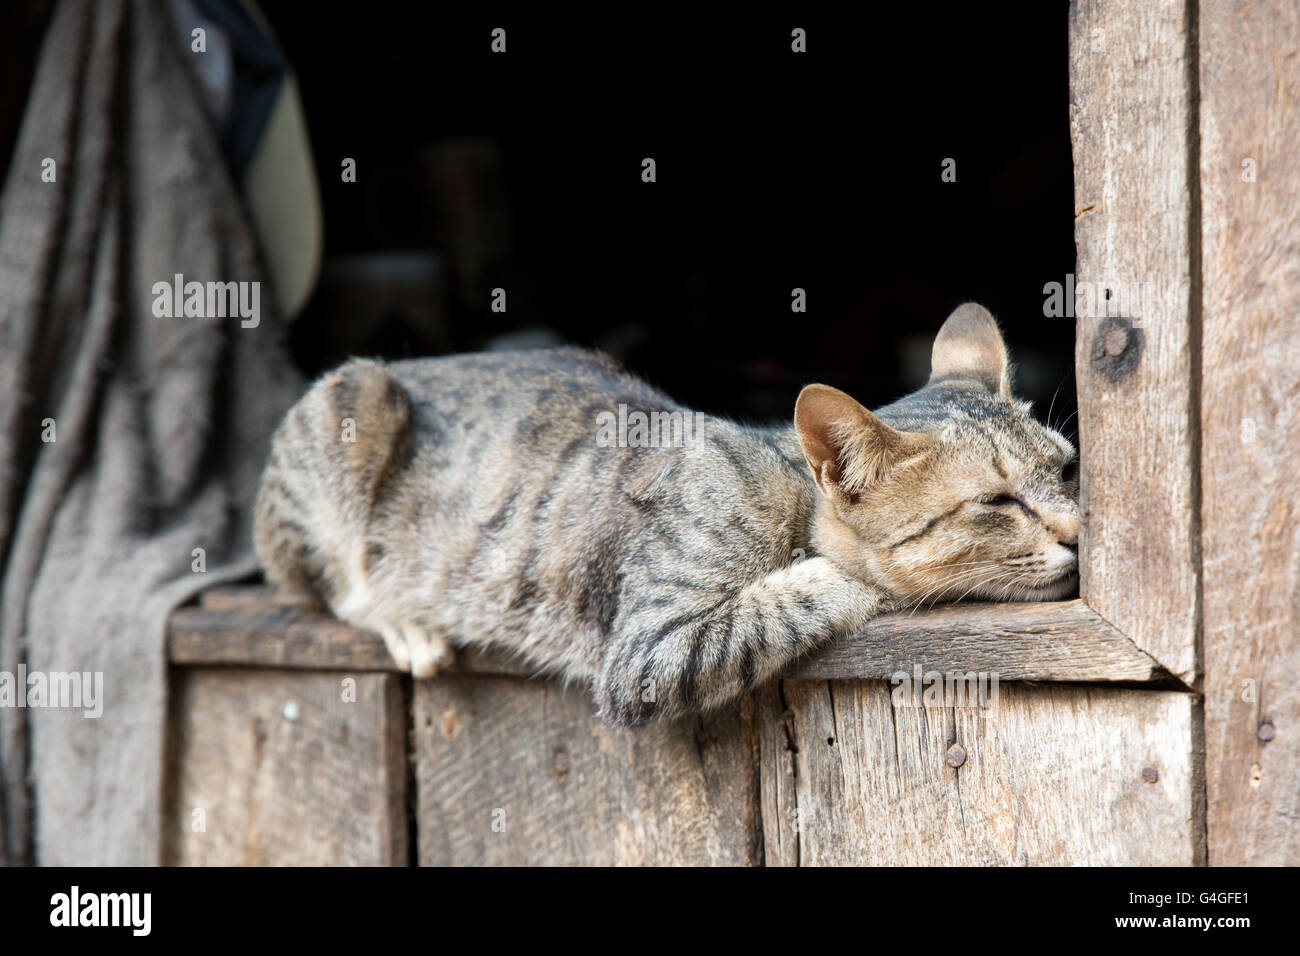 A cat snoozing on a window of a traditional Kayaw (Bwe) wood house, Heyi Ko village, Kayah State, Myanmar - Stock Image